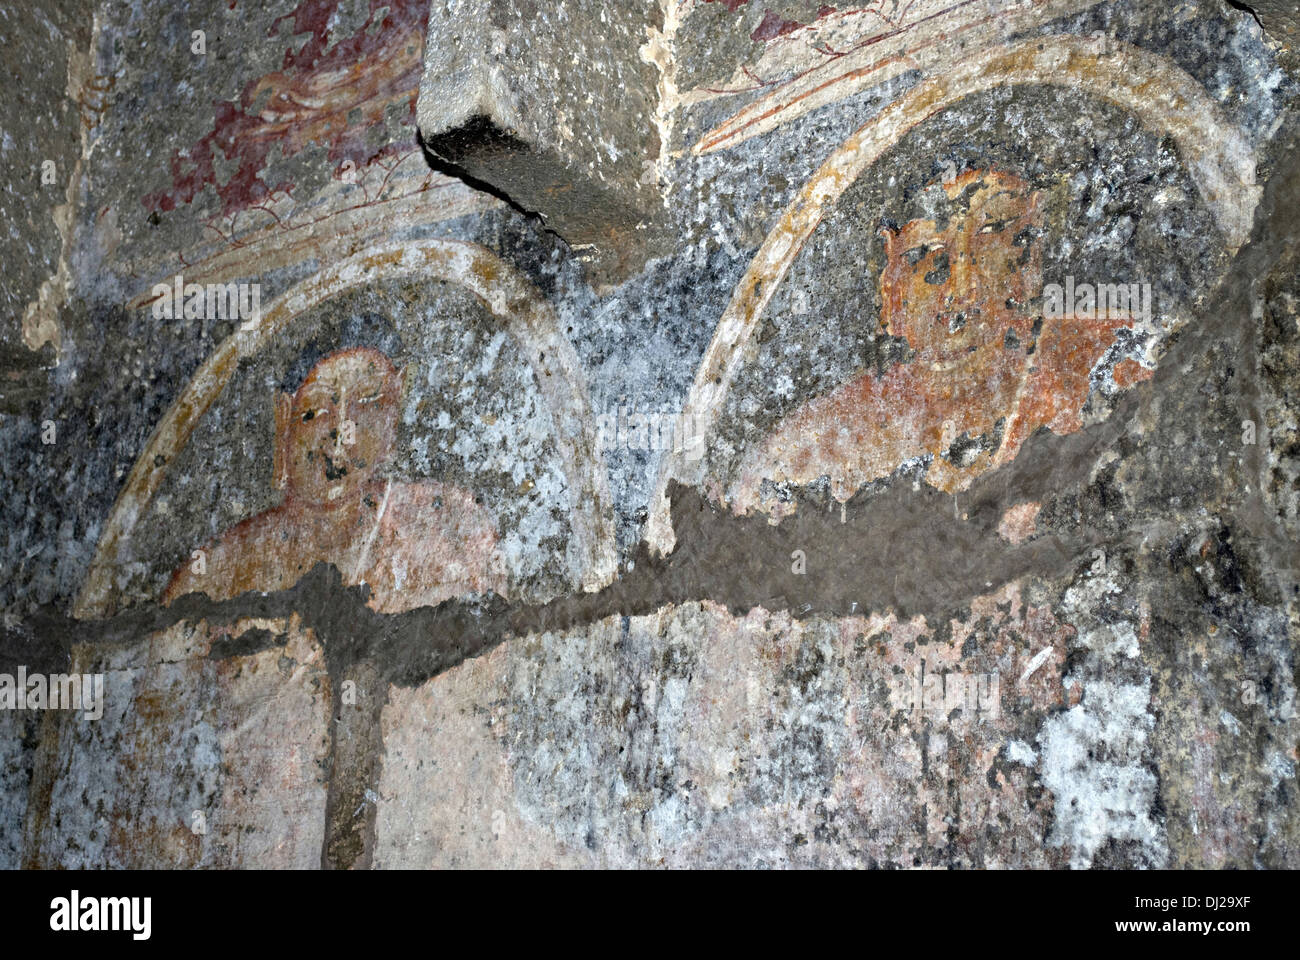 Pitalkhora Caves. Painted standing Buddhas of 5th. Century AD on left wall of Chaitya 3. Aurangabad district, Maharashtra, India - Stock Image